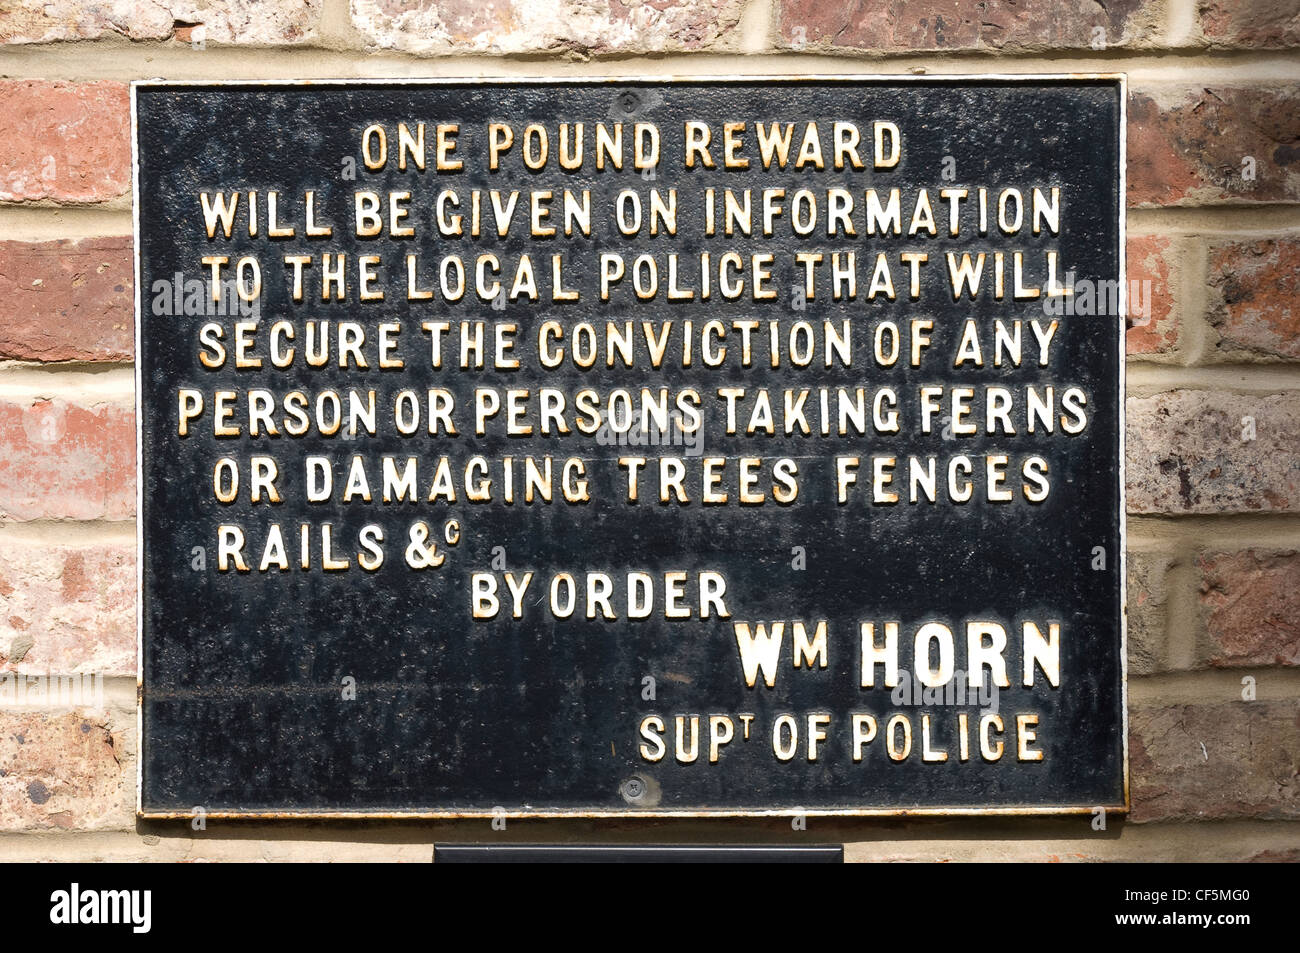 Railway sign offering a reward of one pound for information to secure a conviction for persons or person taking - Stock Image